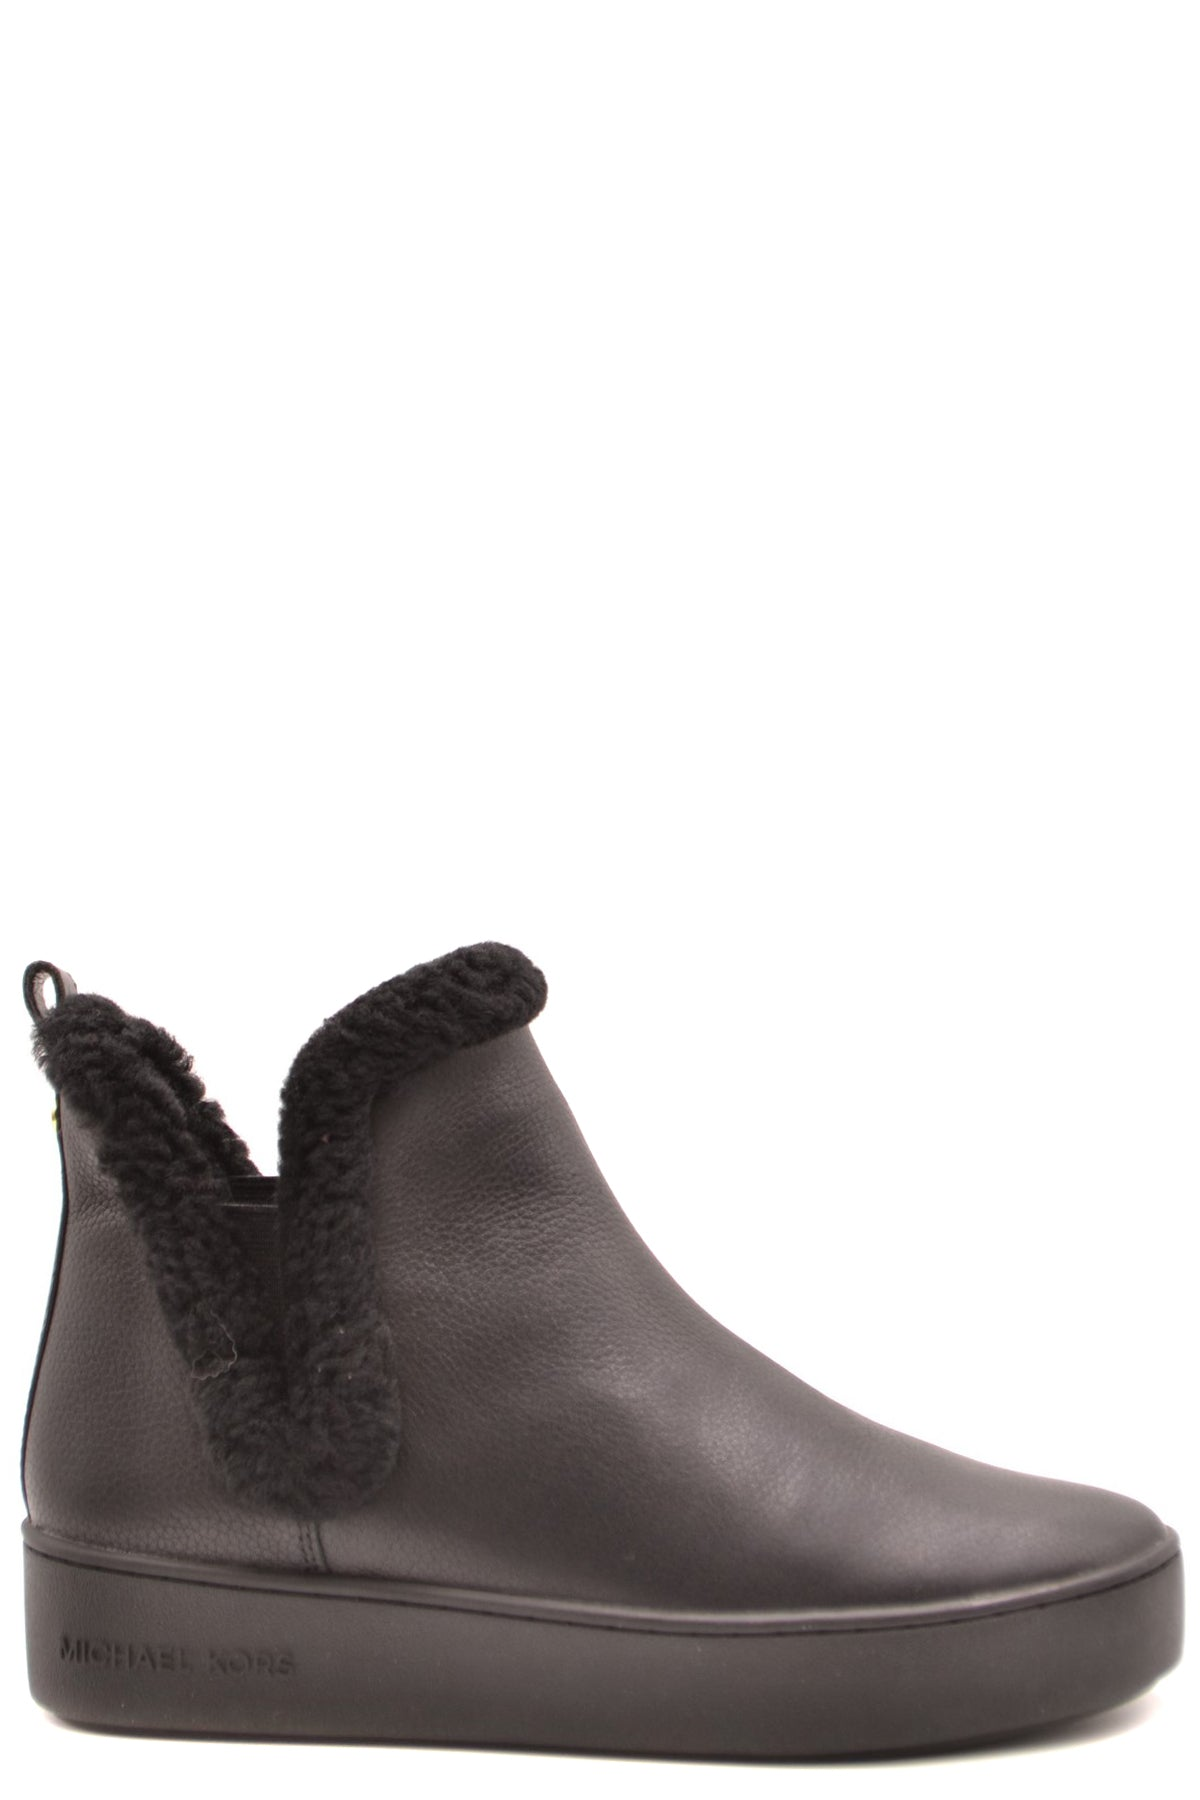 Shoes Michael Kors-Women's Fashion - Women's Shoes - Women's Boots-5-Product Details Manufacturer Part Number: 43F9Ahfp1LYear: 2020Composition: Leather 100%Size: UsGender: WomanMade In: ChinaSeason: Fall / WinterType Of Accessory: BootsMain Color: BlackTerms: New With Label-Keyomi-Sook